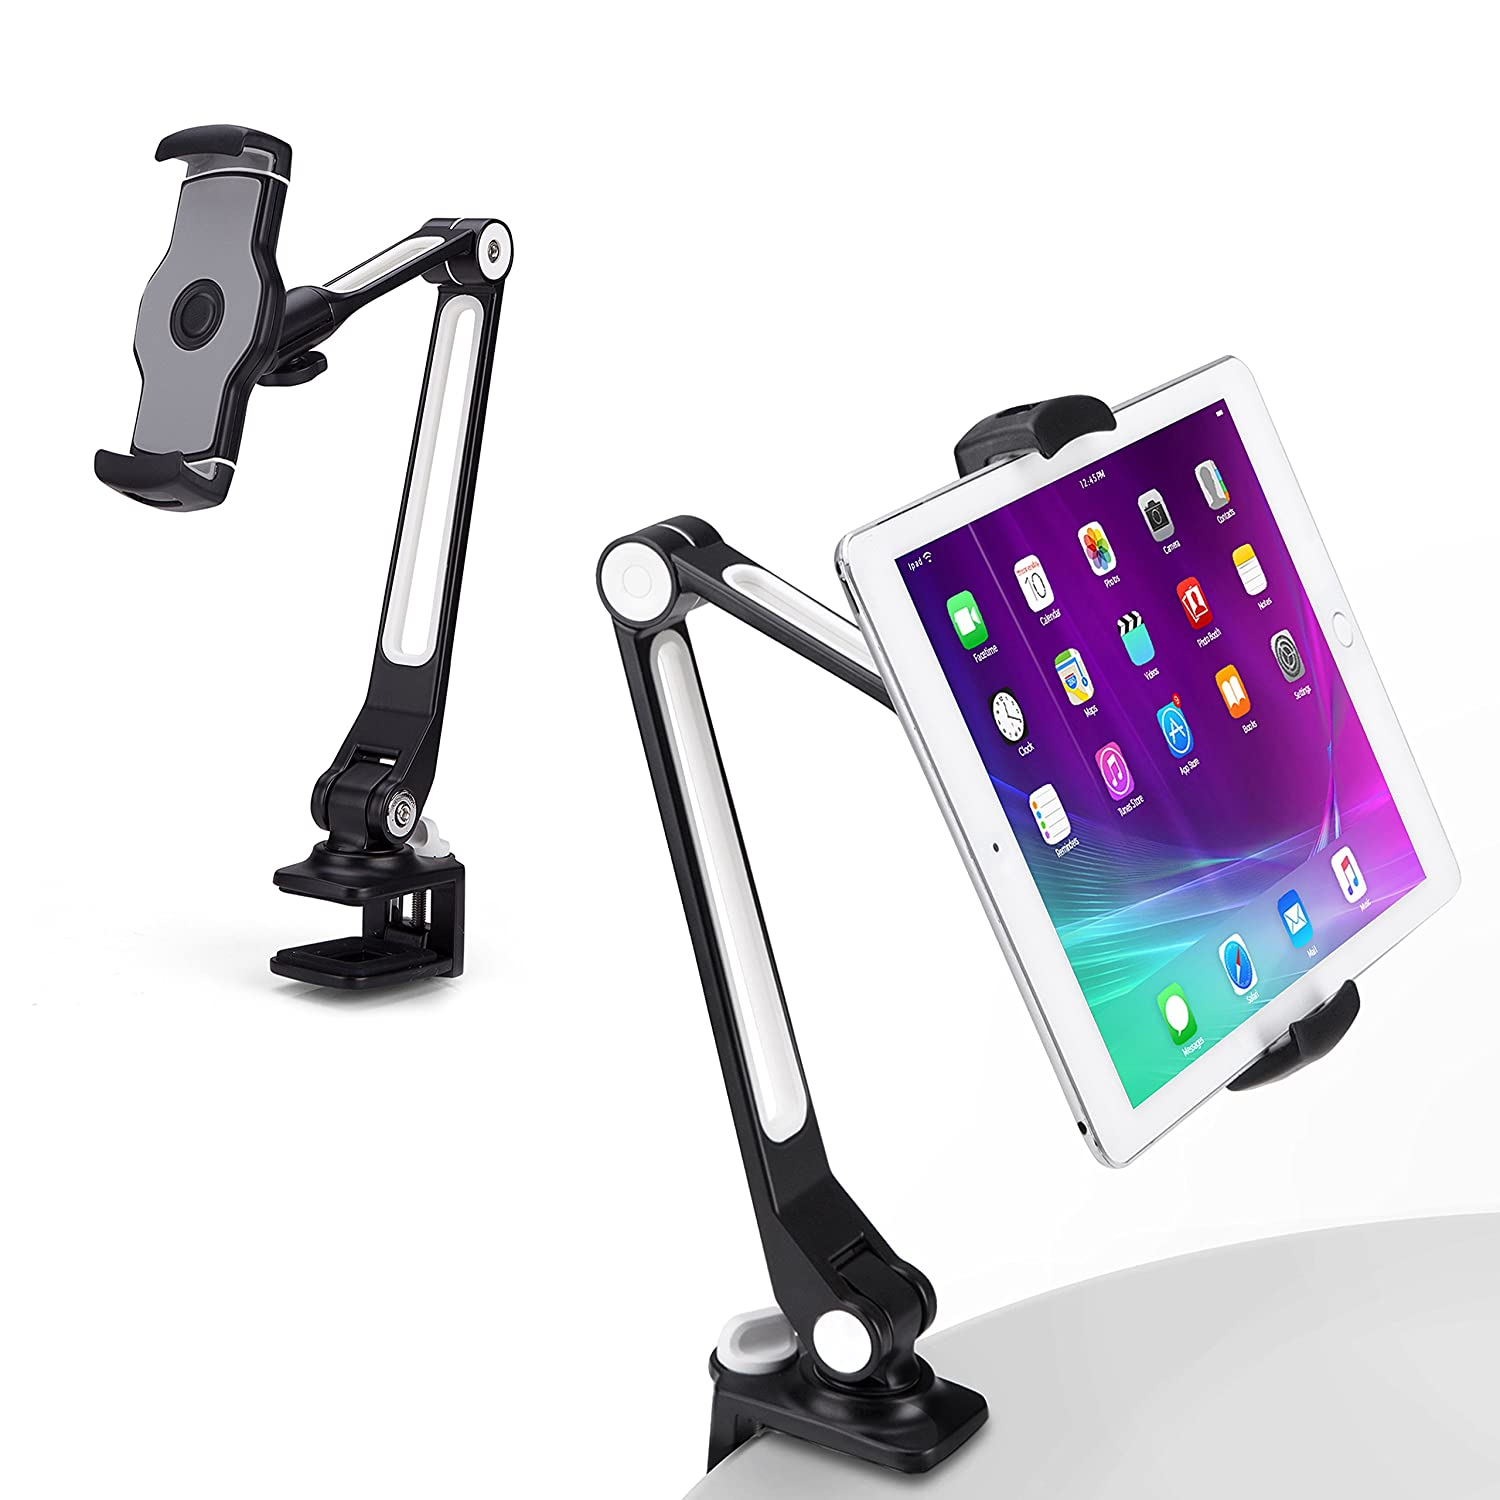 AboveTEK Sturdy Tablet Phone Holder, Aluminum Long Arm Tablet Mount, 360° Swivel Tablet Stand & Phone Holder Cradle Clamps 4-11' Devices for Kitchen Bedside Office Desk Showcase Display TS-398B